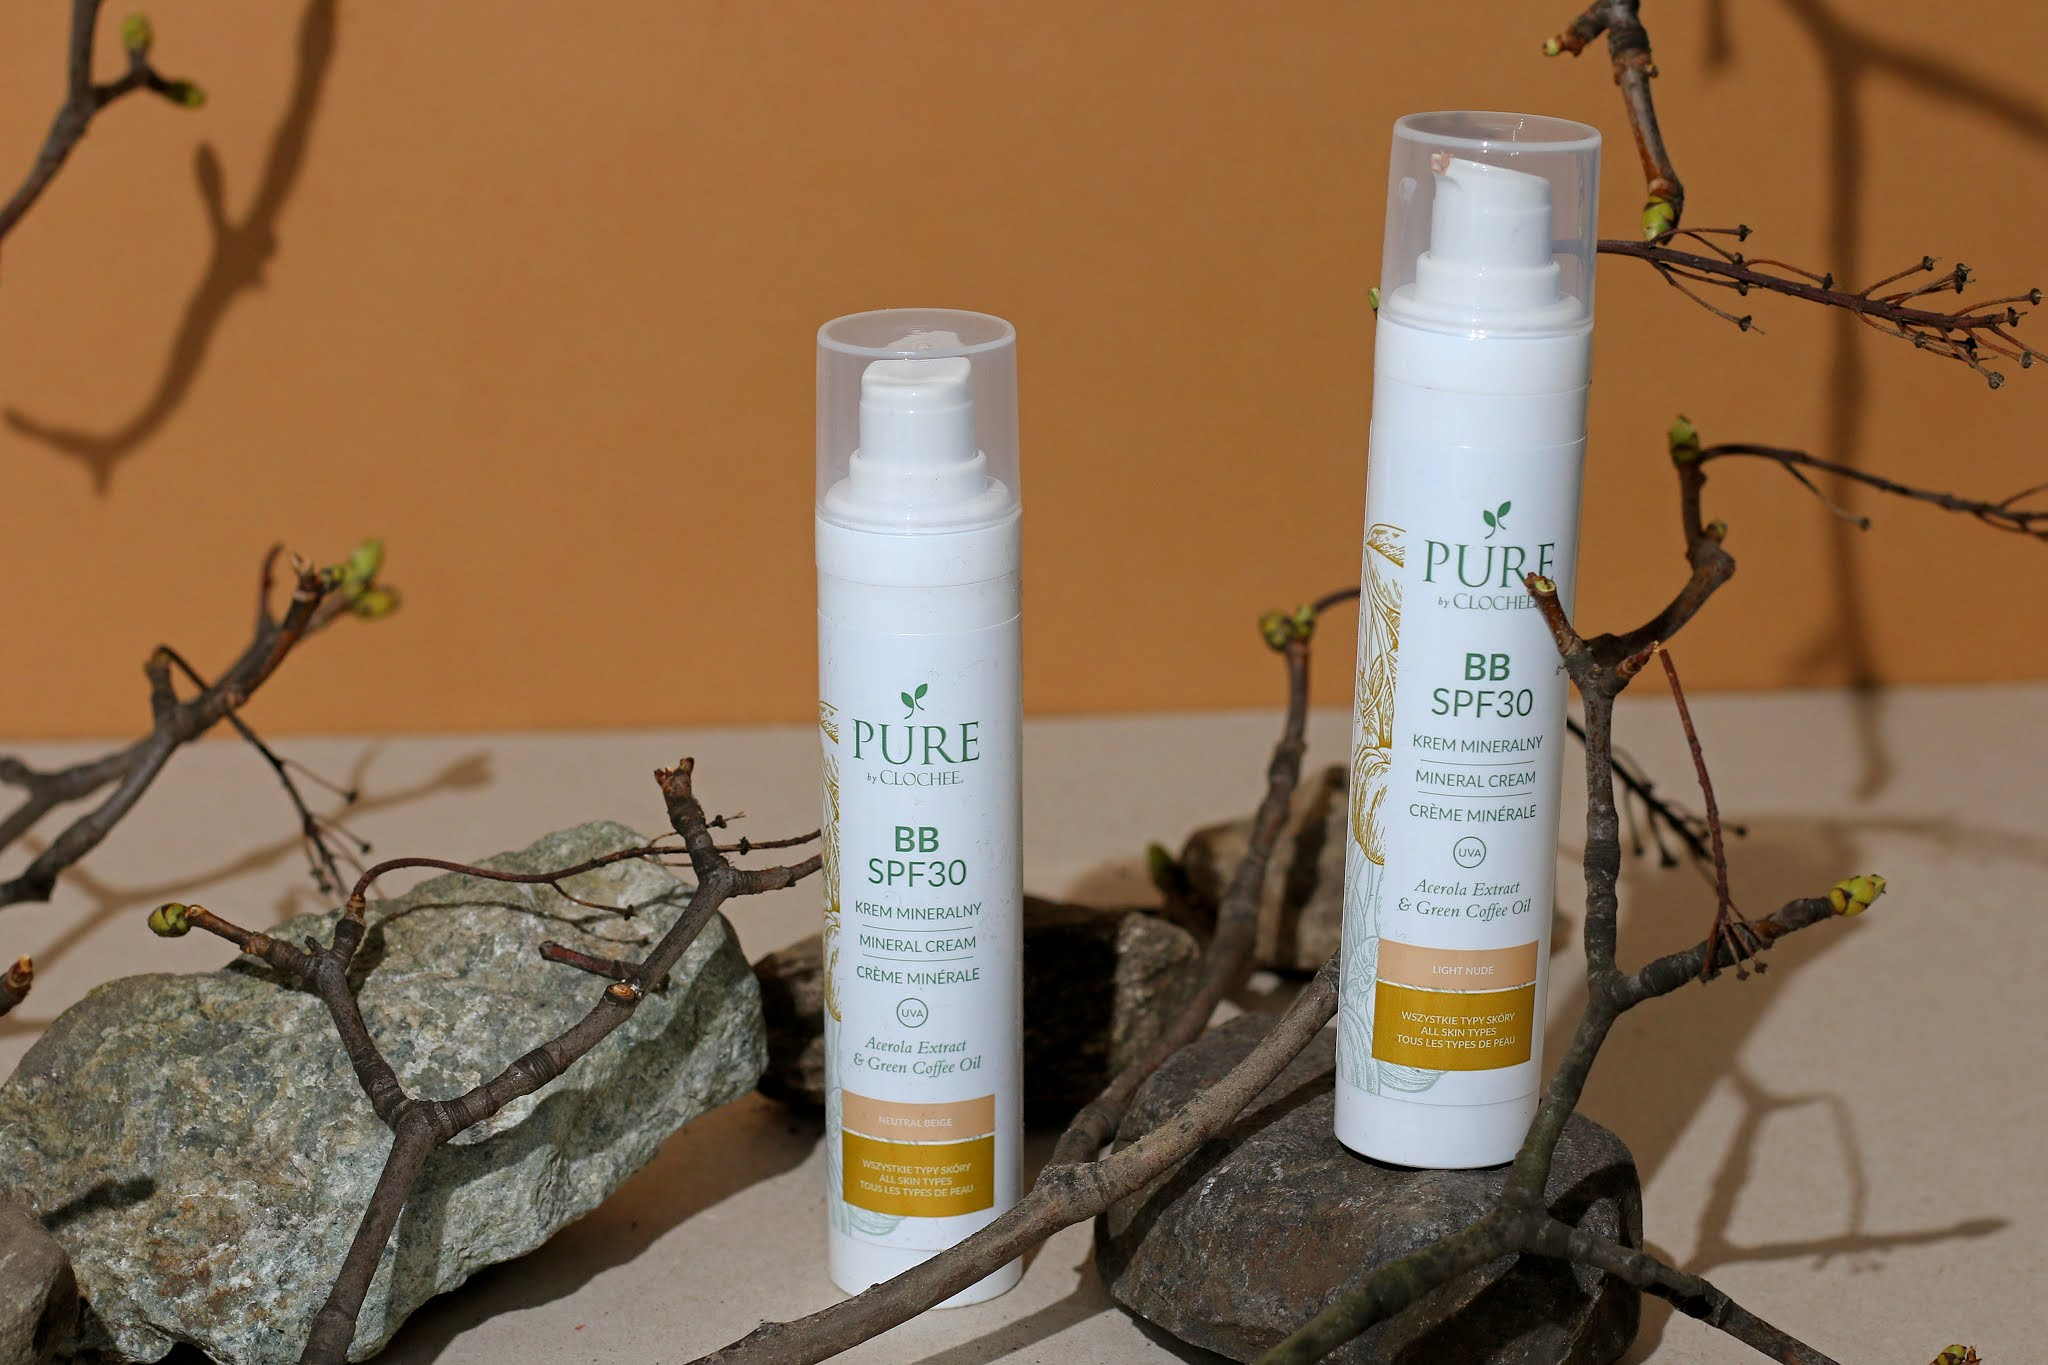 Pure By Clochee spf30